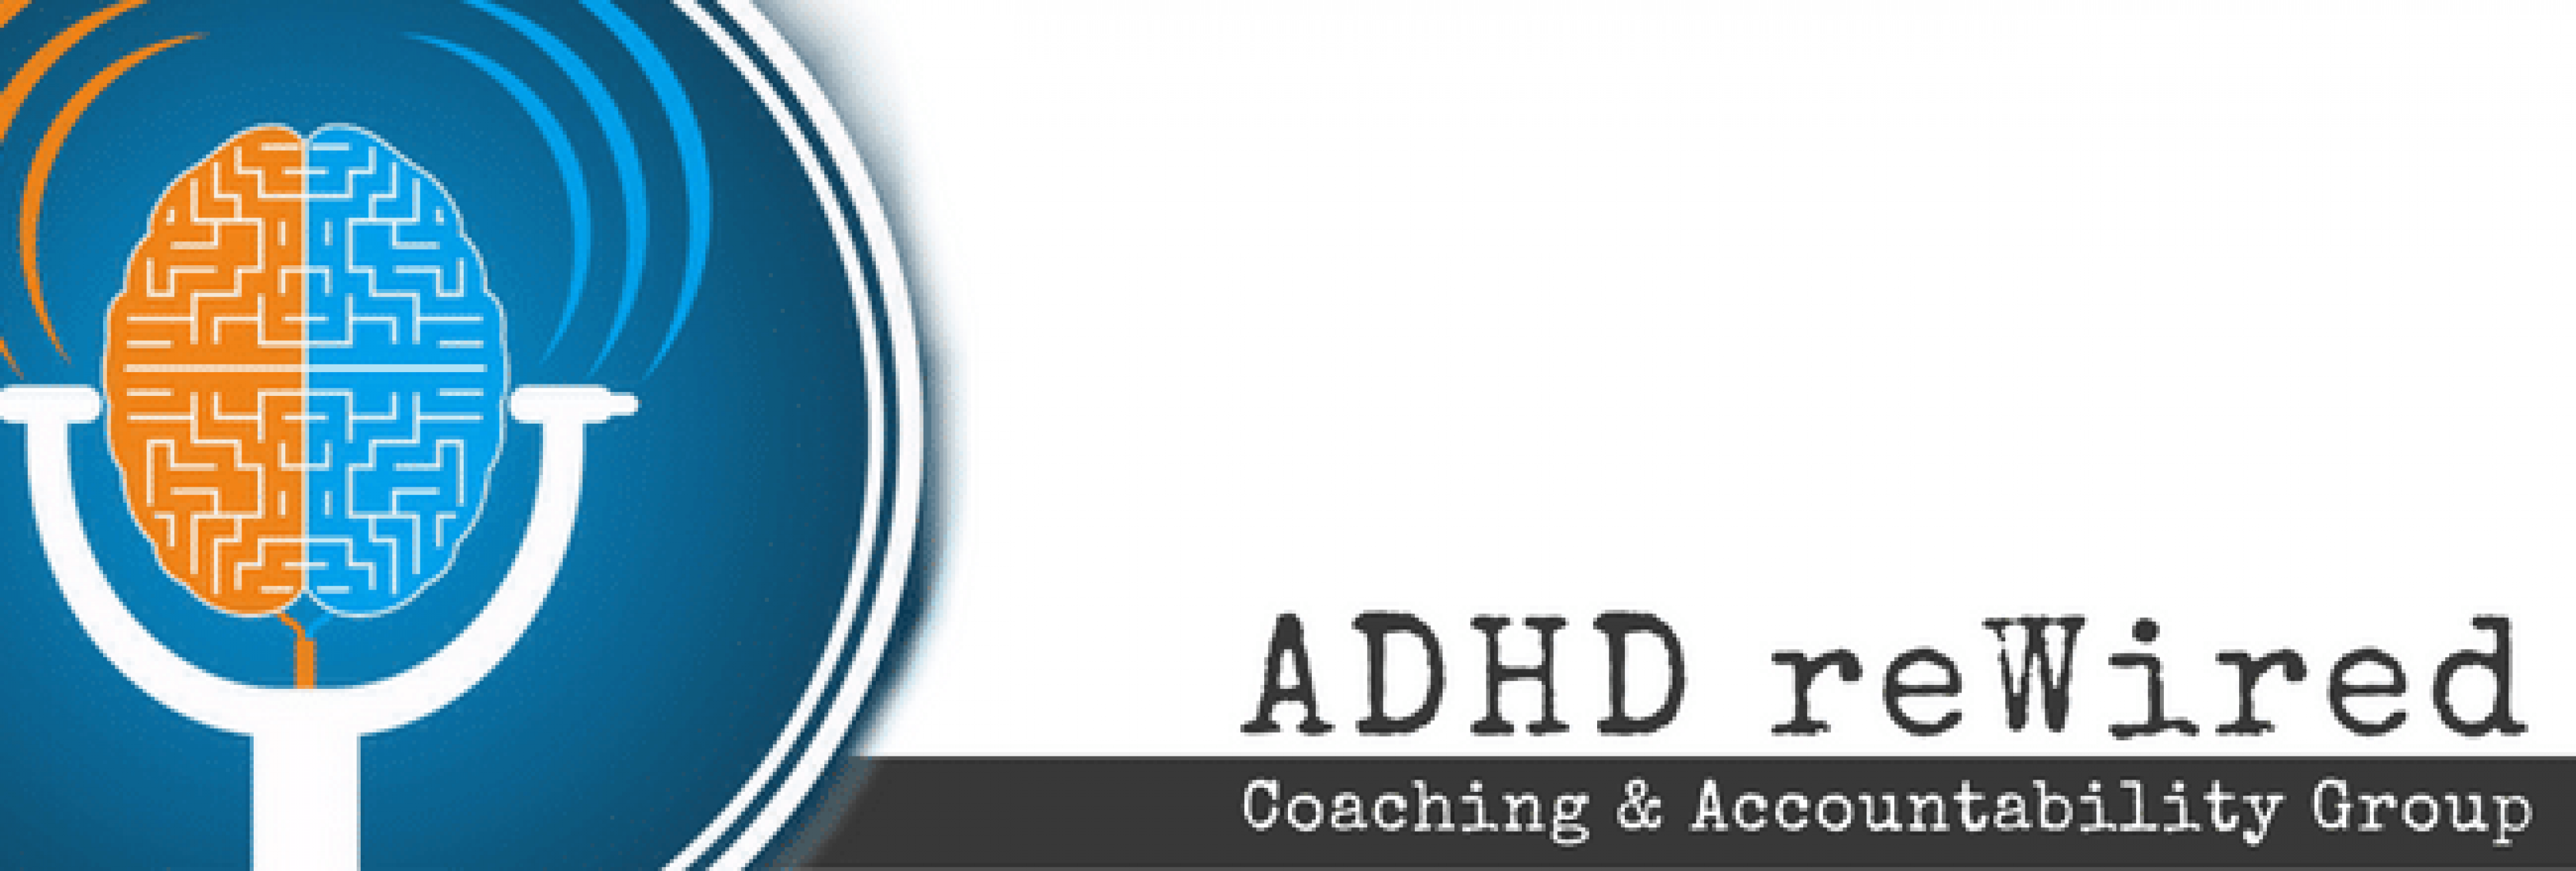 ADHD reWired Coaching and Accountability Group